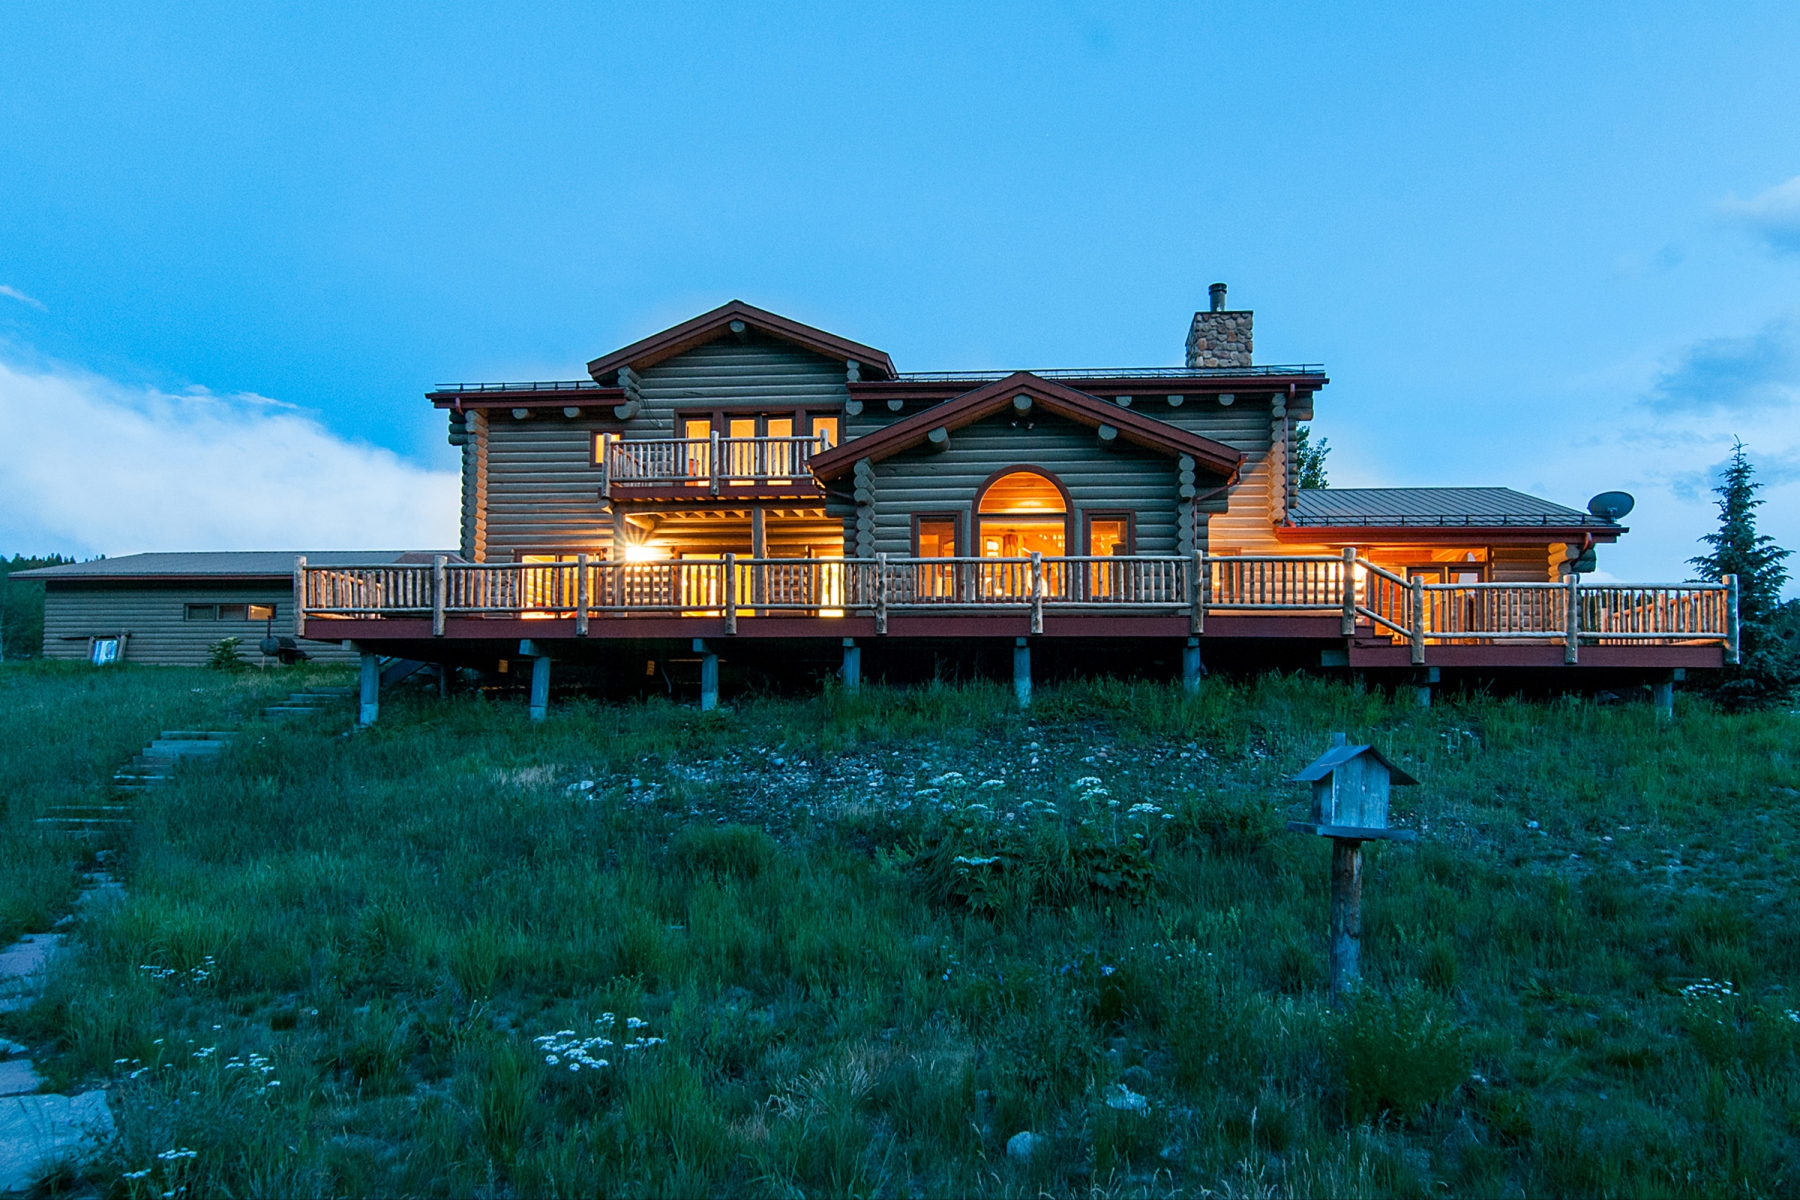 Single Family Home for Sale at Private Home with Acreage and Views of Golf and Skiing 1959 Tiger Road Breckenridge, Colorado 80424 United States